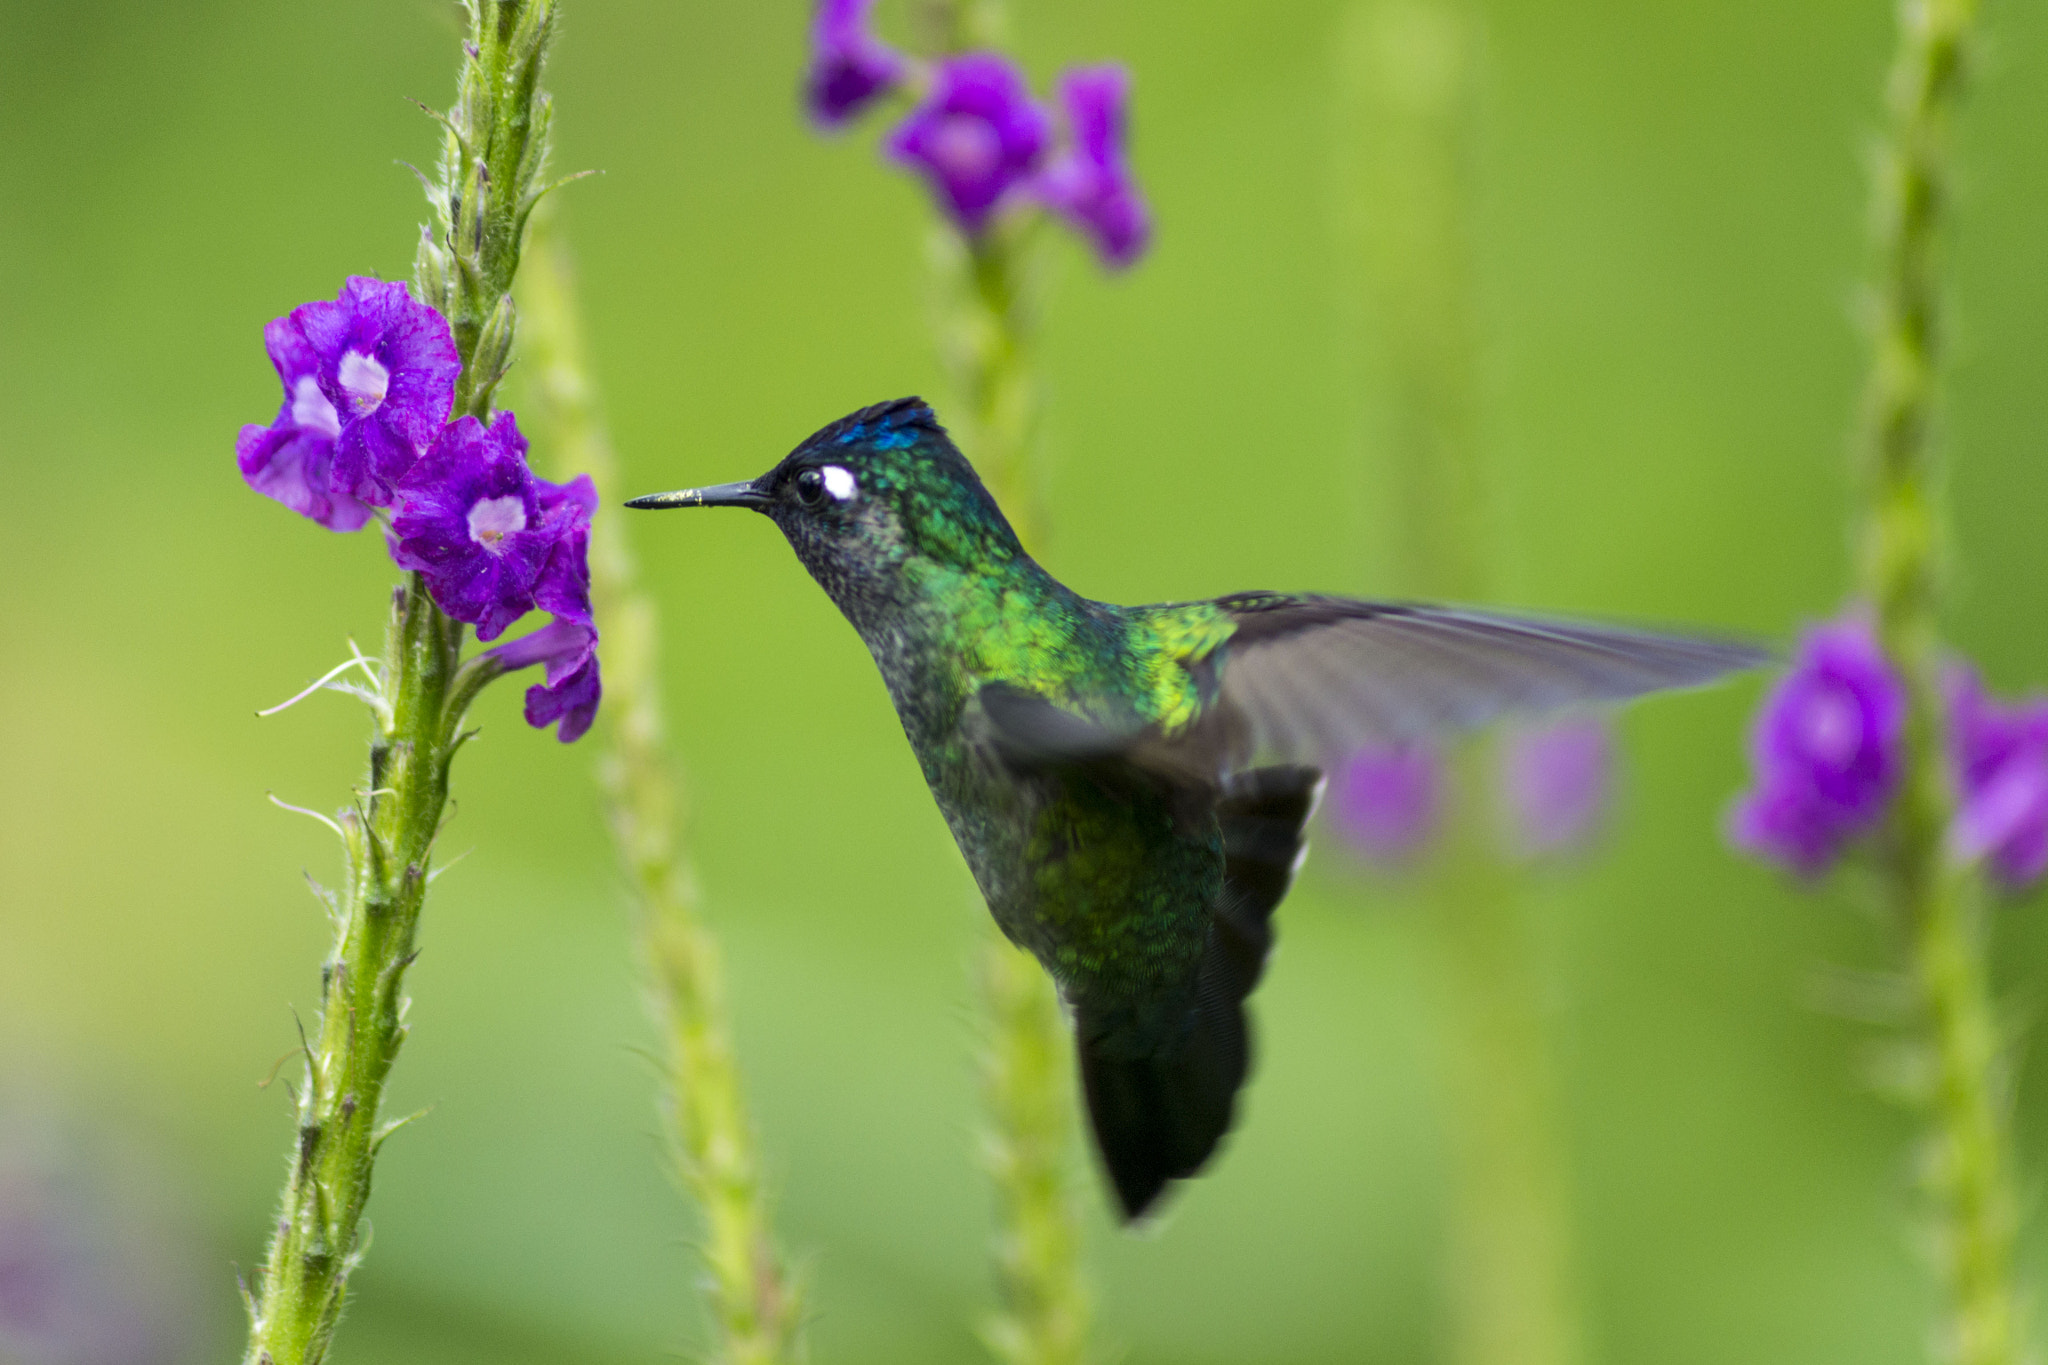 Photograph Colibri by Christophe LB on 500px